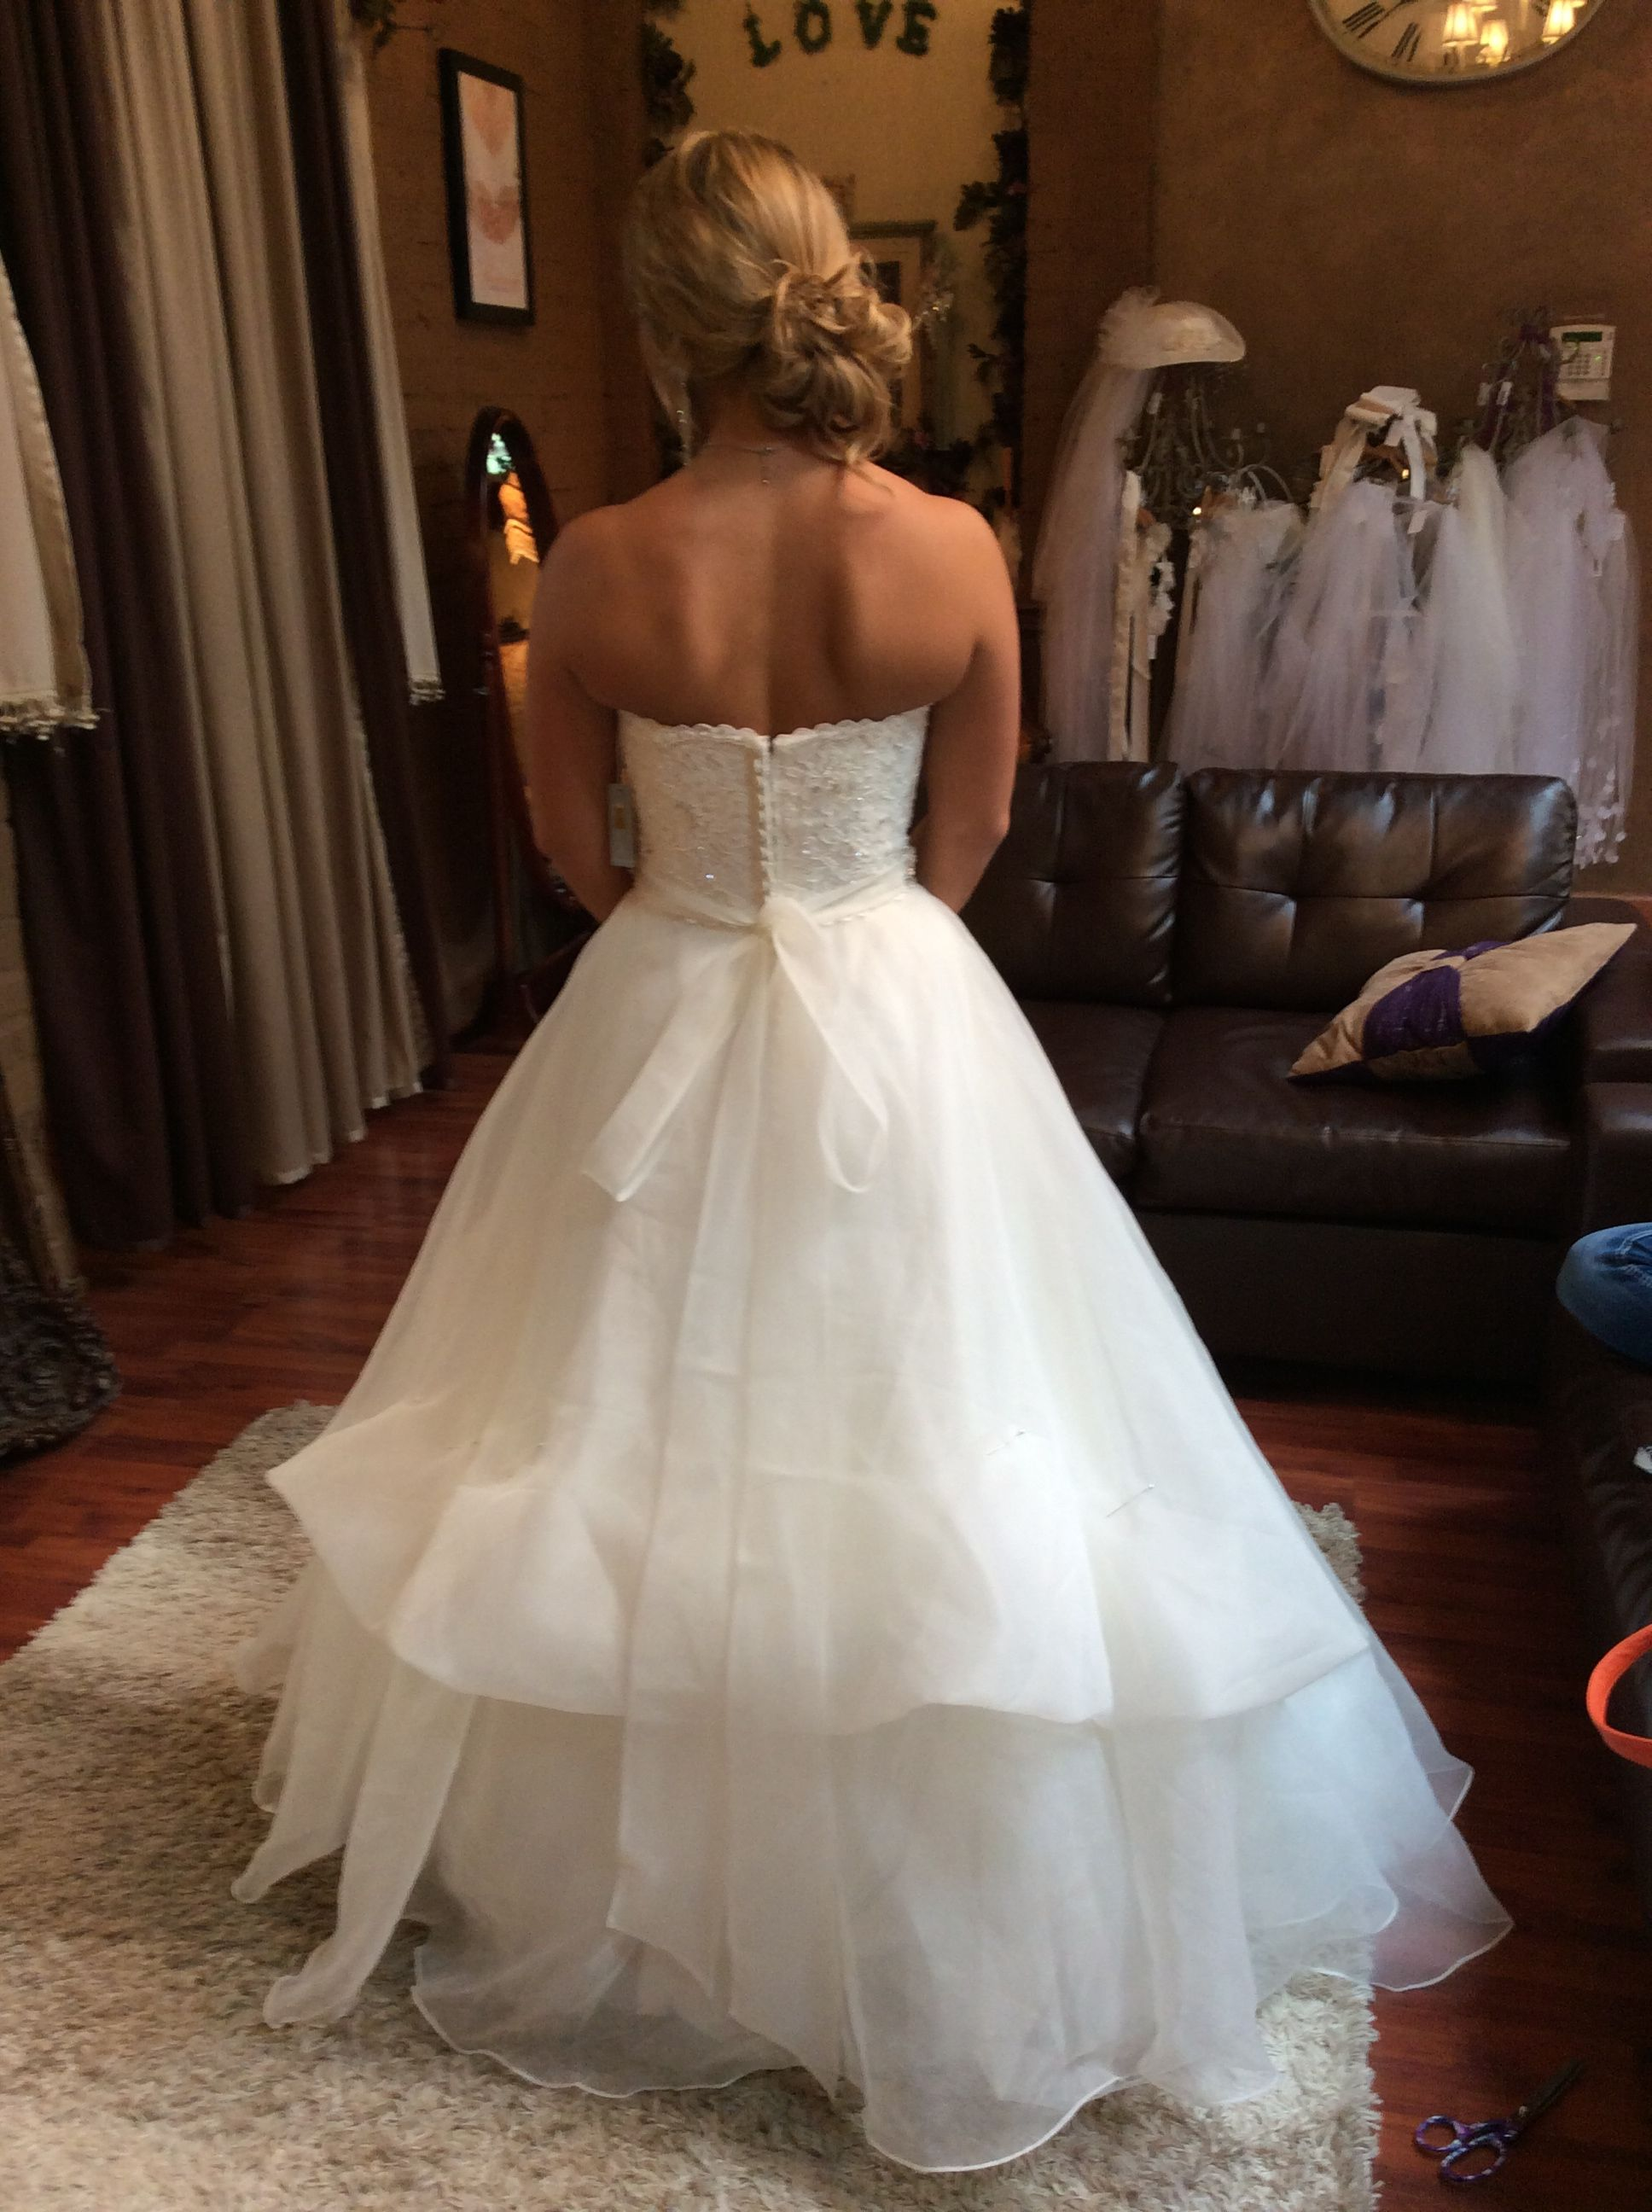 French bustle | Wedding Gown Bustle Styles | Pinterest | French ...